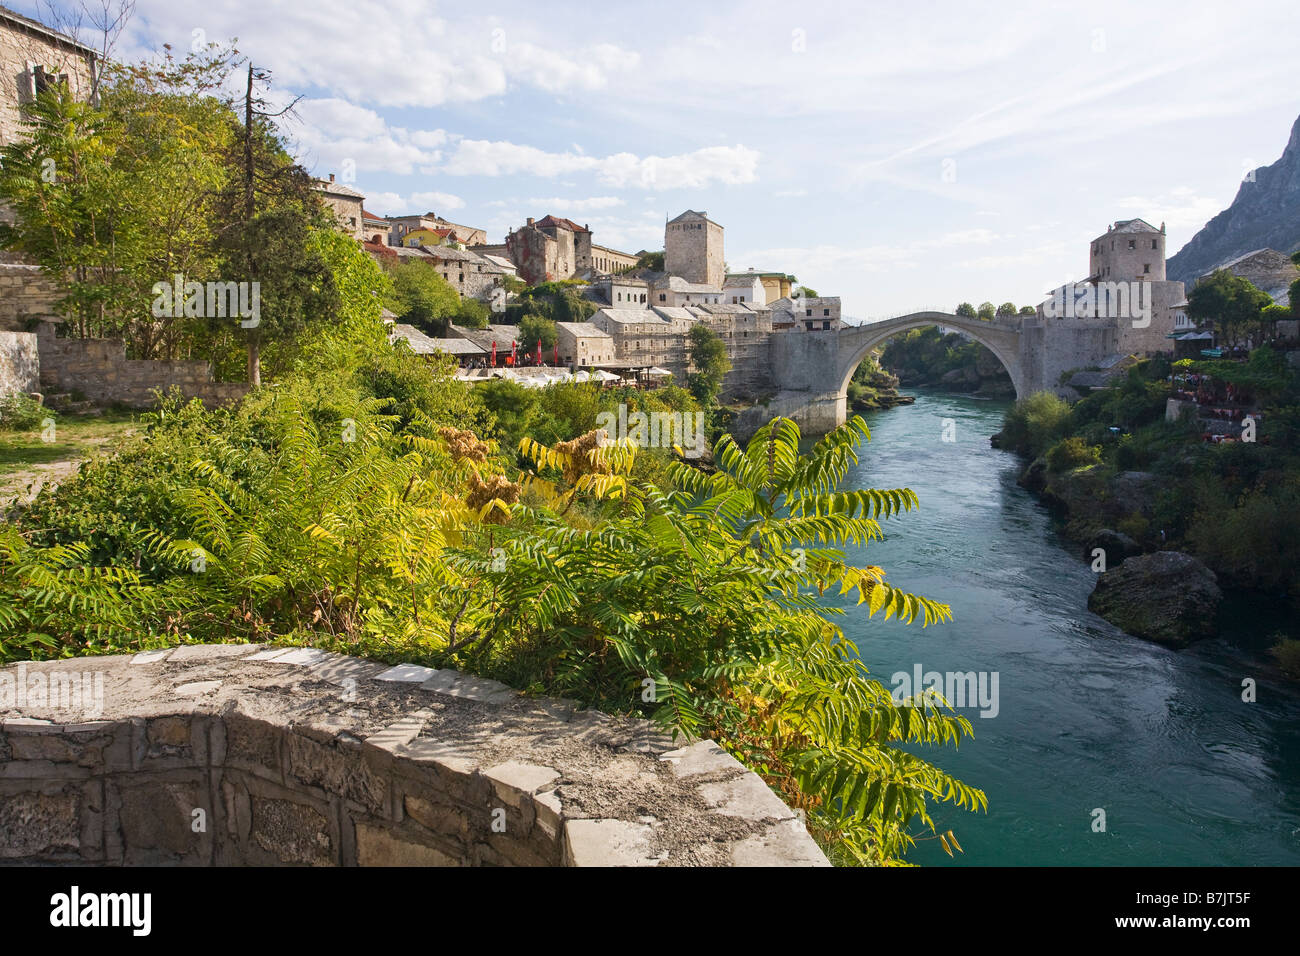 Historic Old Town of Mostar and restored 16th century bridge across the Neretva River in Bosnia Herzegovina Europe Stock Photo